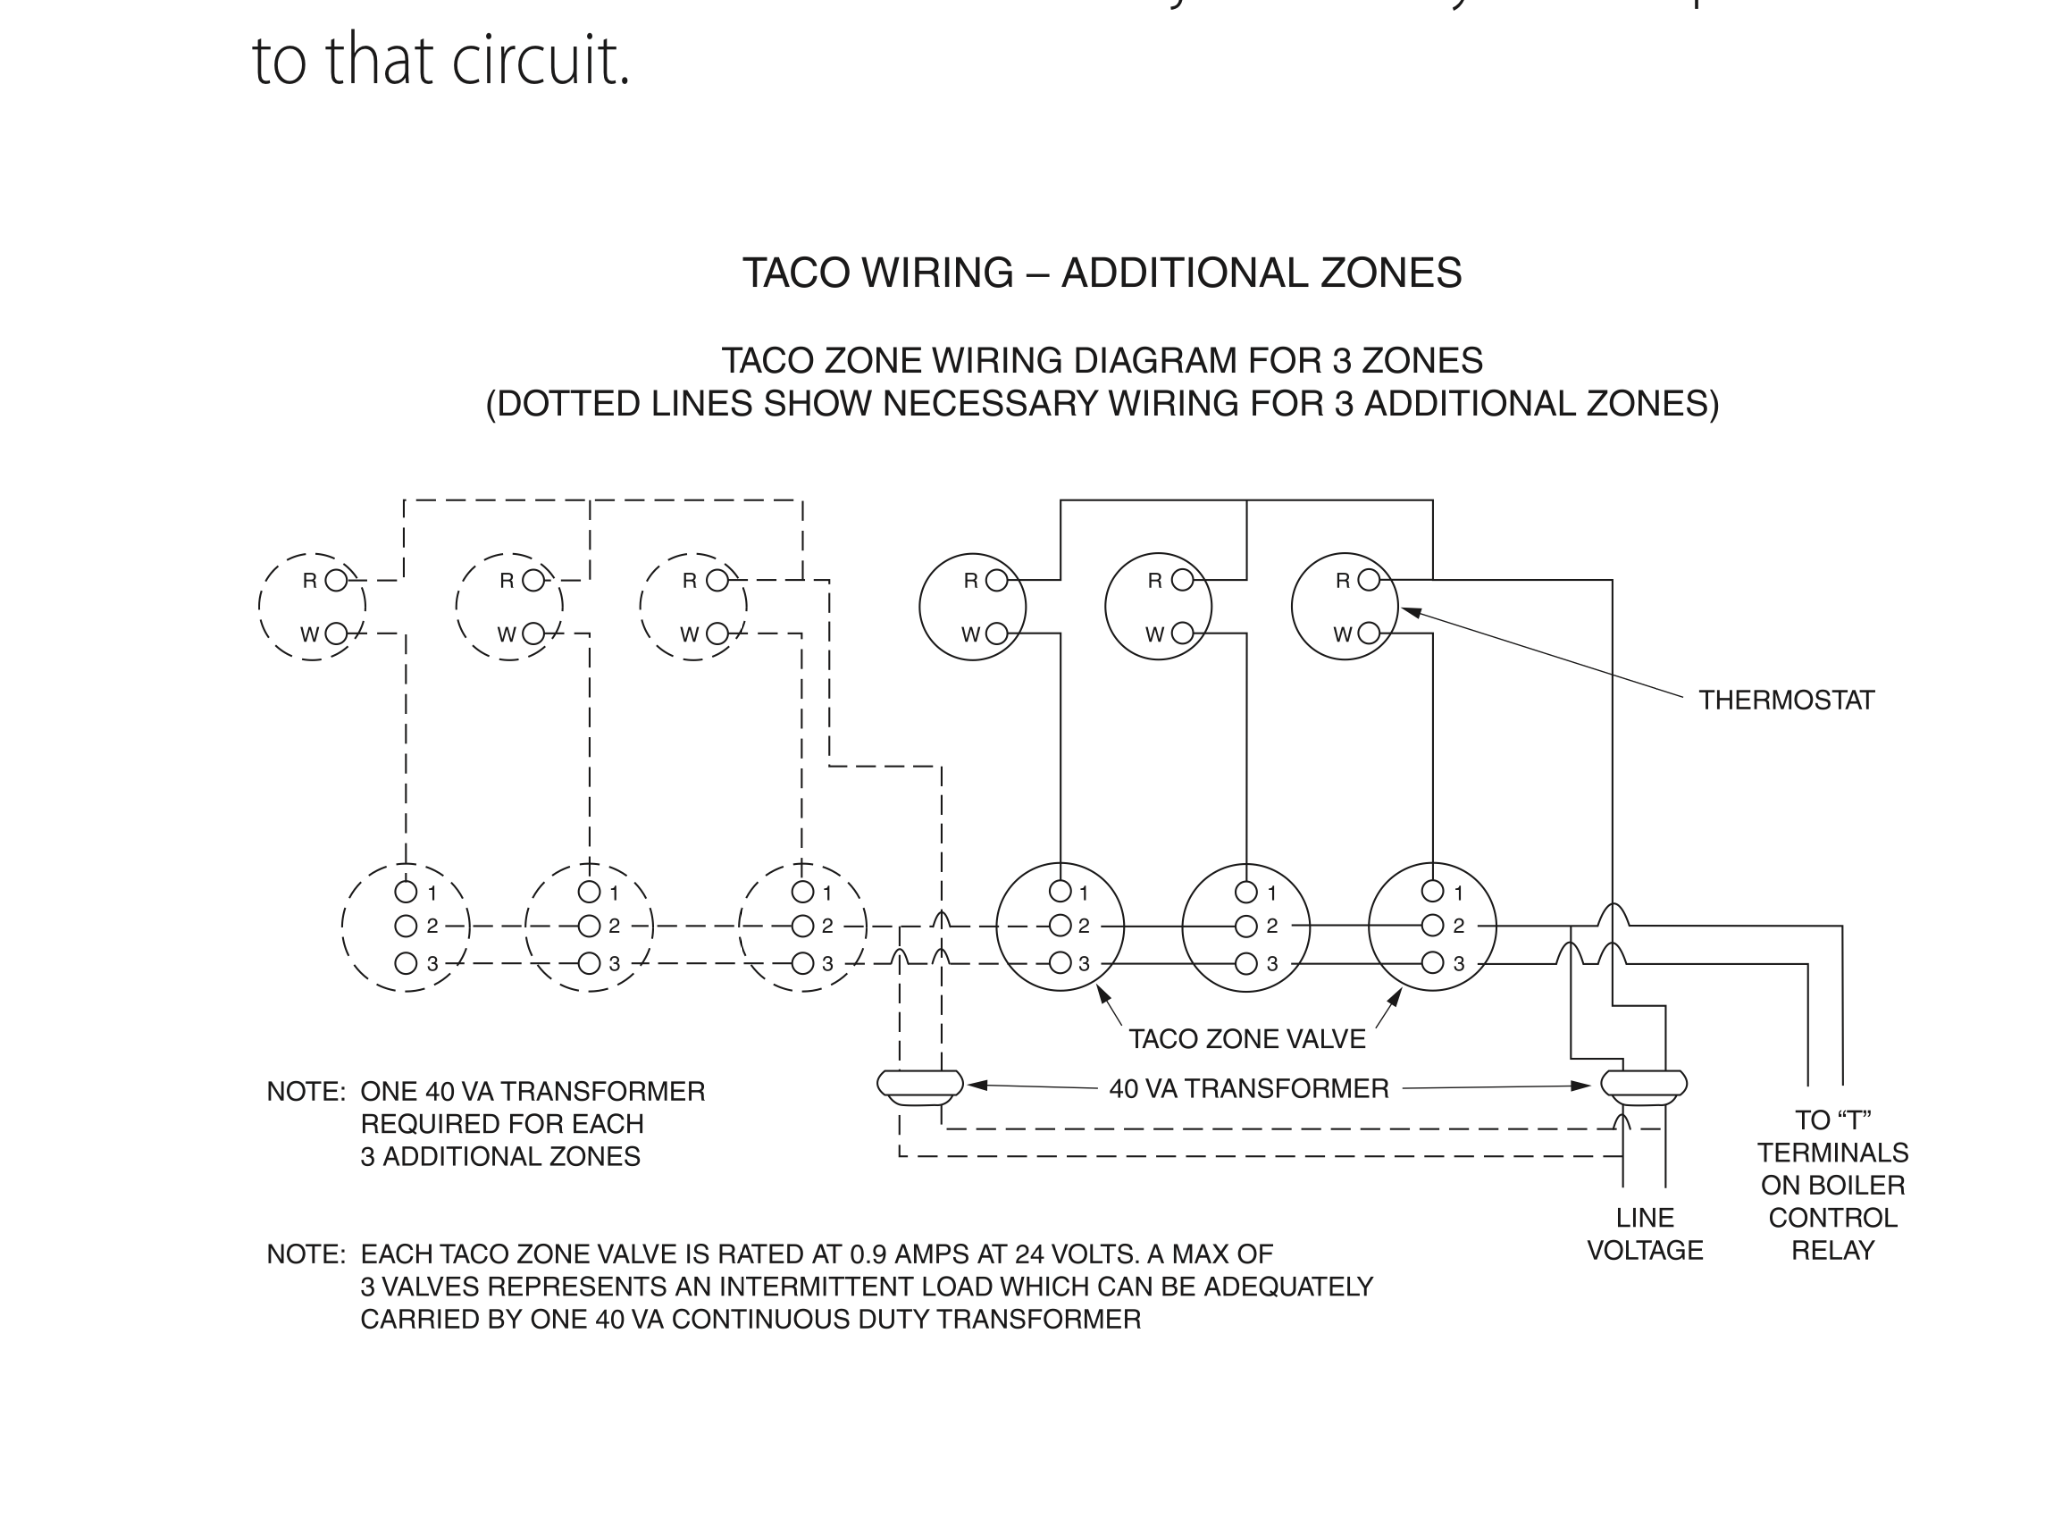 multiple taco zone valve wiring diagram multiple taco zone valve 2 thermostat 2 zone valve wiring heating help the wall multiple taco zone valve wiring diagram taco zone valve wiring diagram 555 24 volt nilza